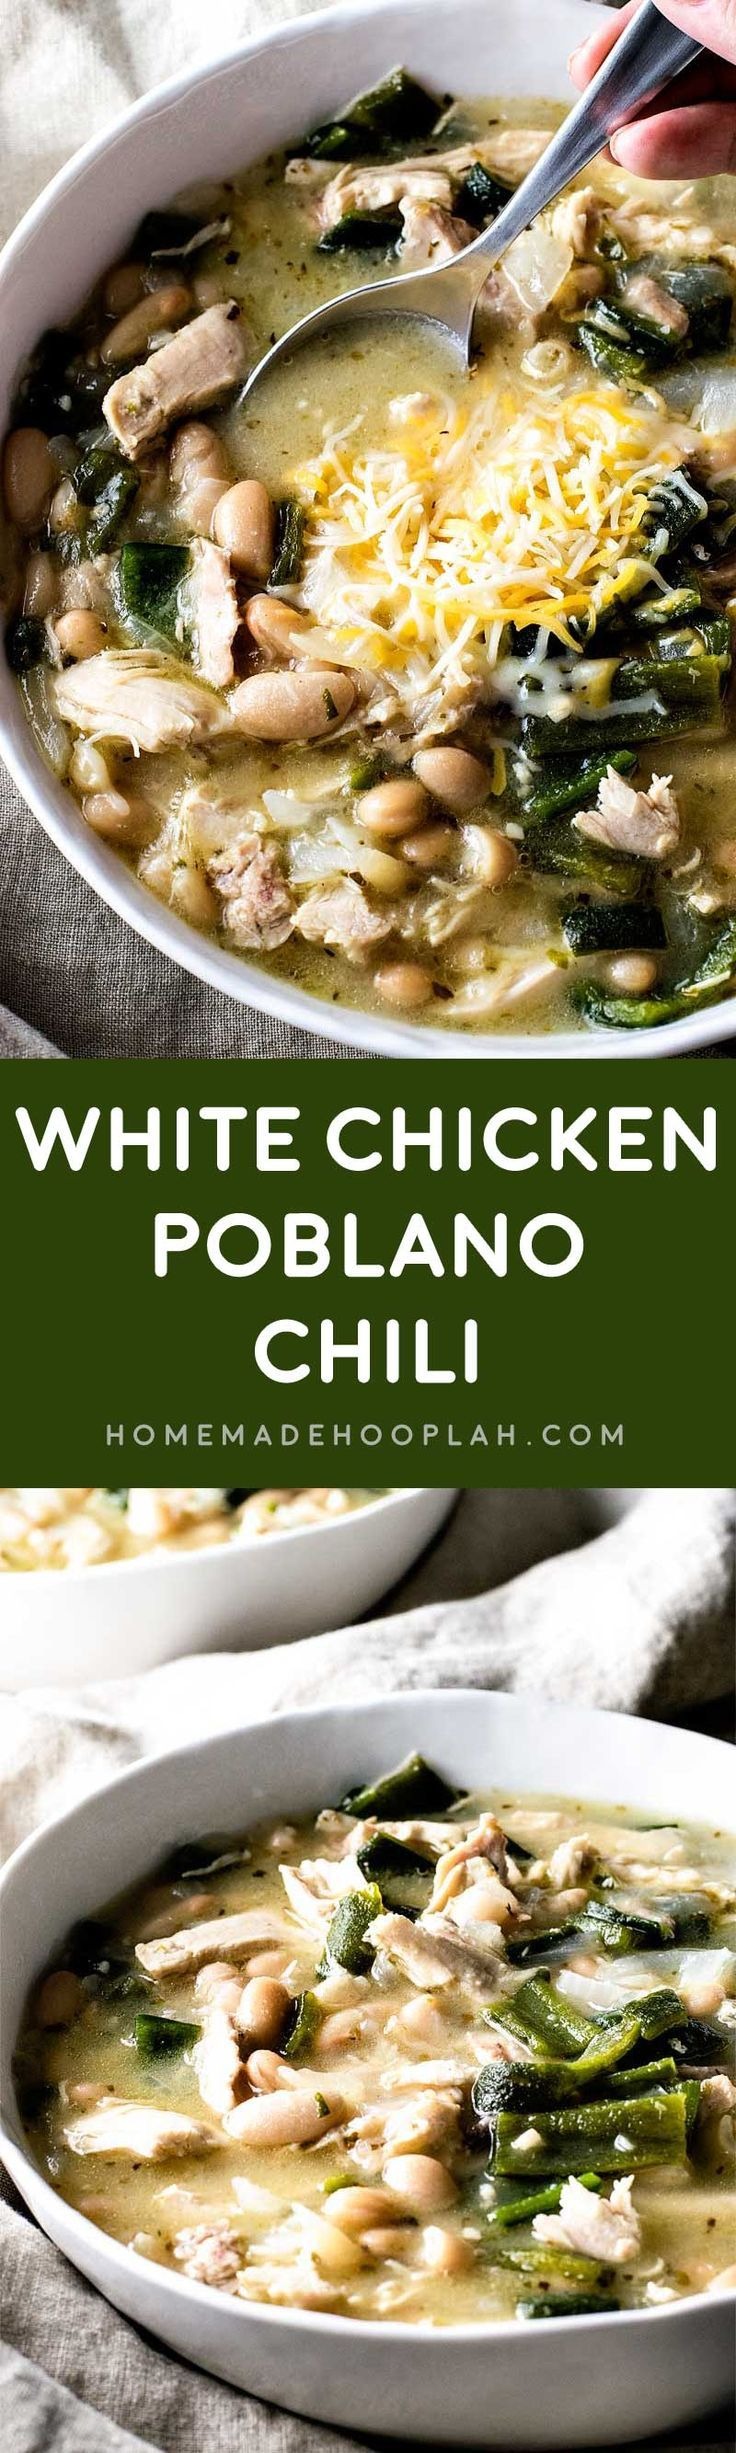 White Chicken Poblano Chili! Boiled whole chicken, homemade chicken broth, tender chilies, and flavorful cannellini beans make this white chicken poblano chili an at-home favorite! | Homemade Hooplah